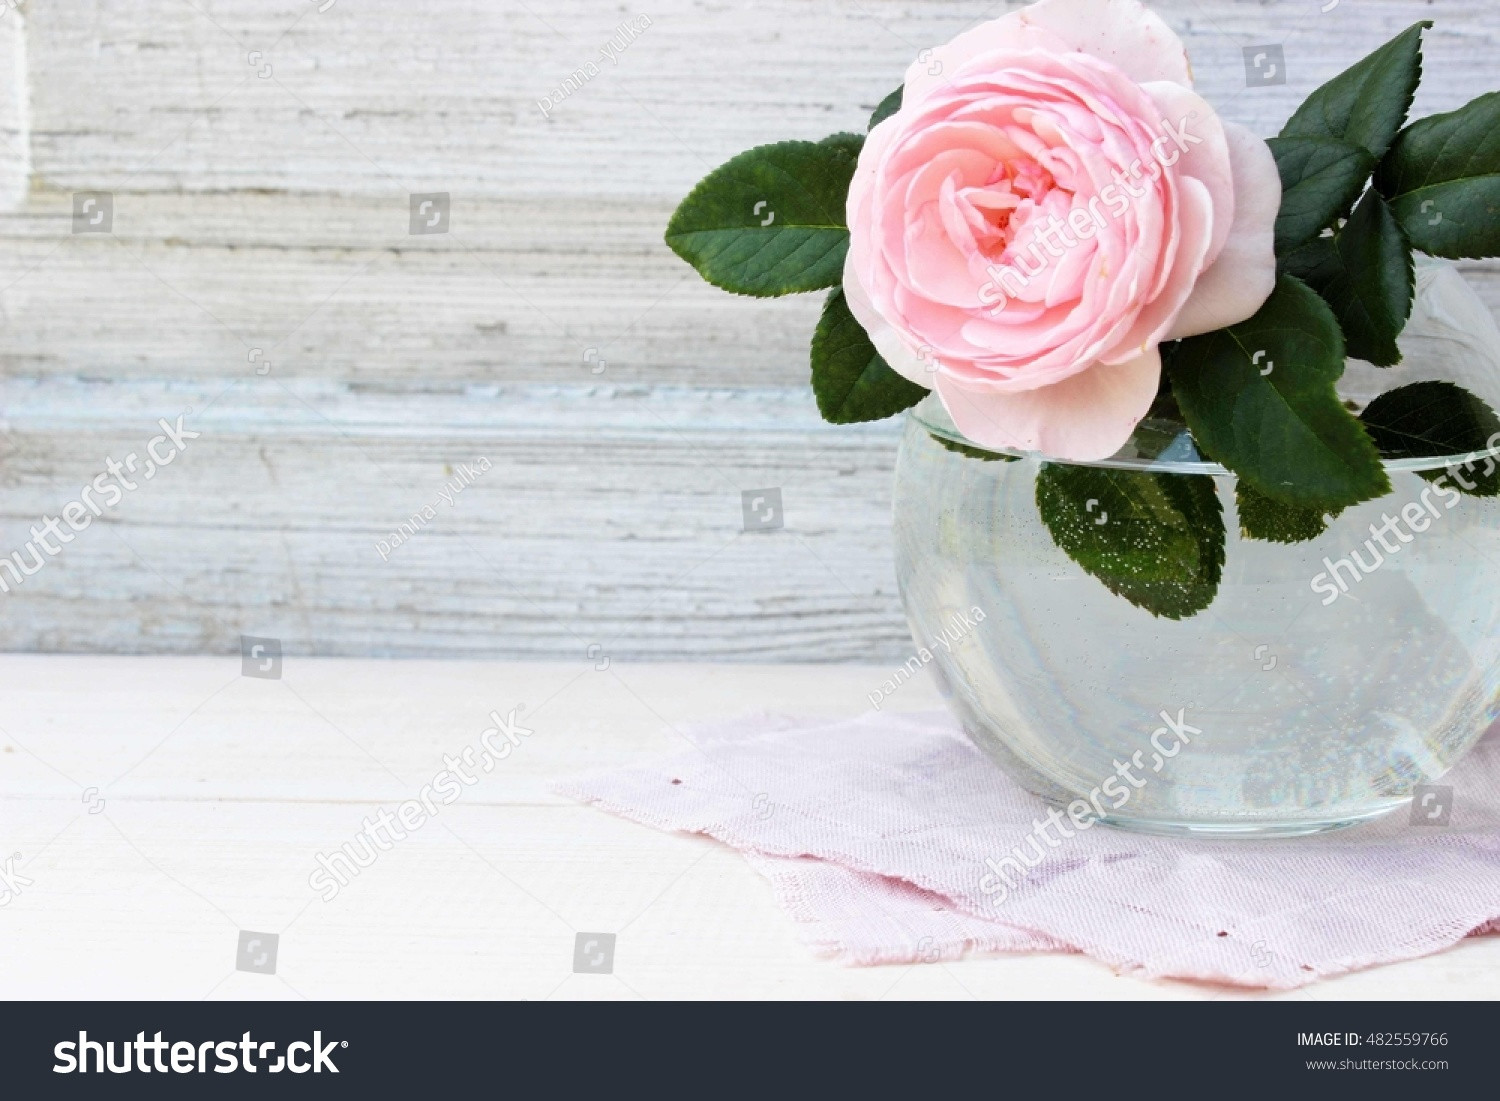 single flower glass vase of royalty free single flower of pink rose in round 482559766 stock throughout single flower of pink rose in round glass vase on old white wooden background floral